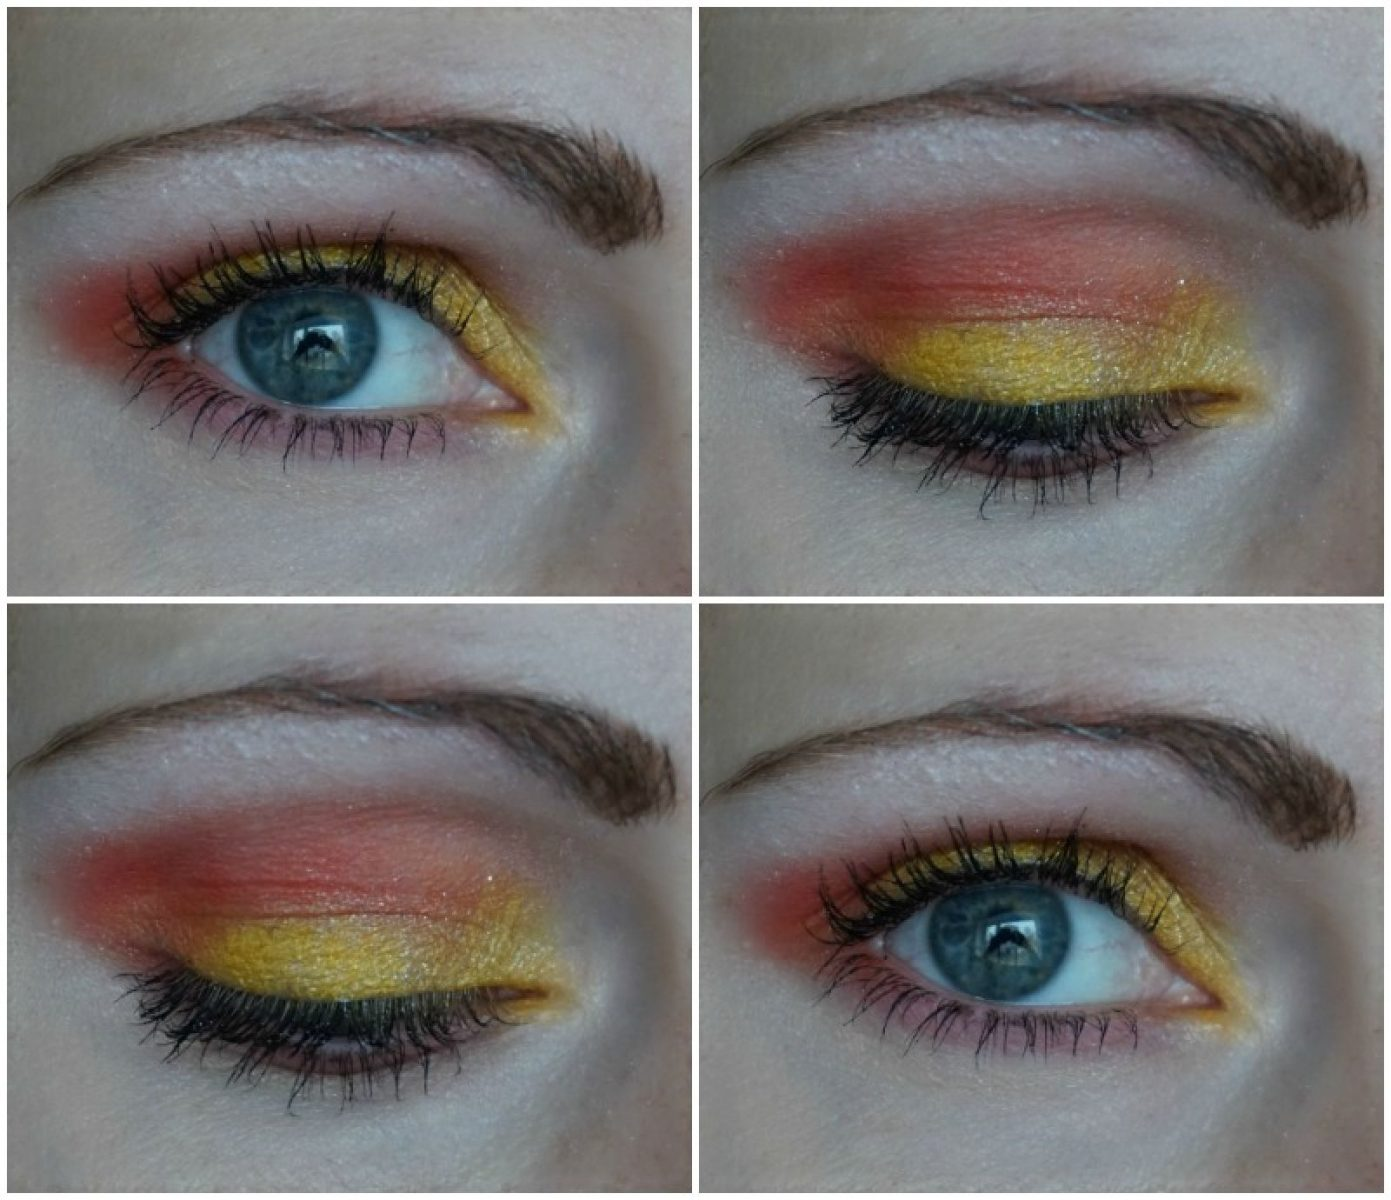 EOTD: Yellow and orange eye makeup